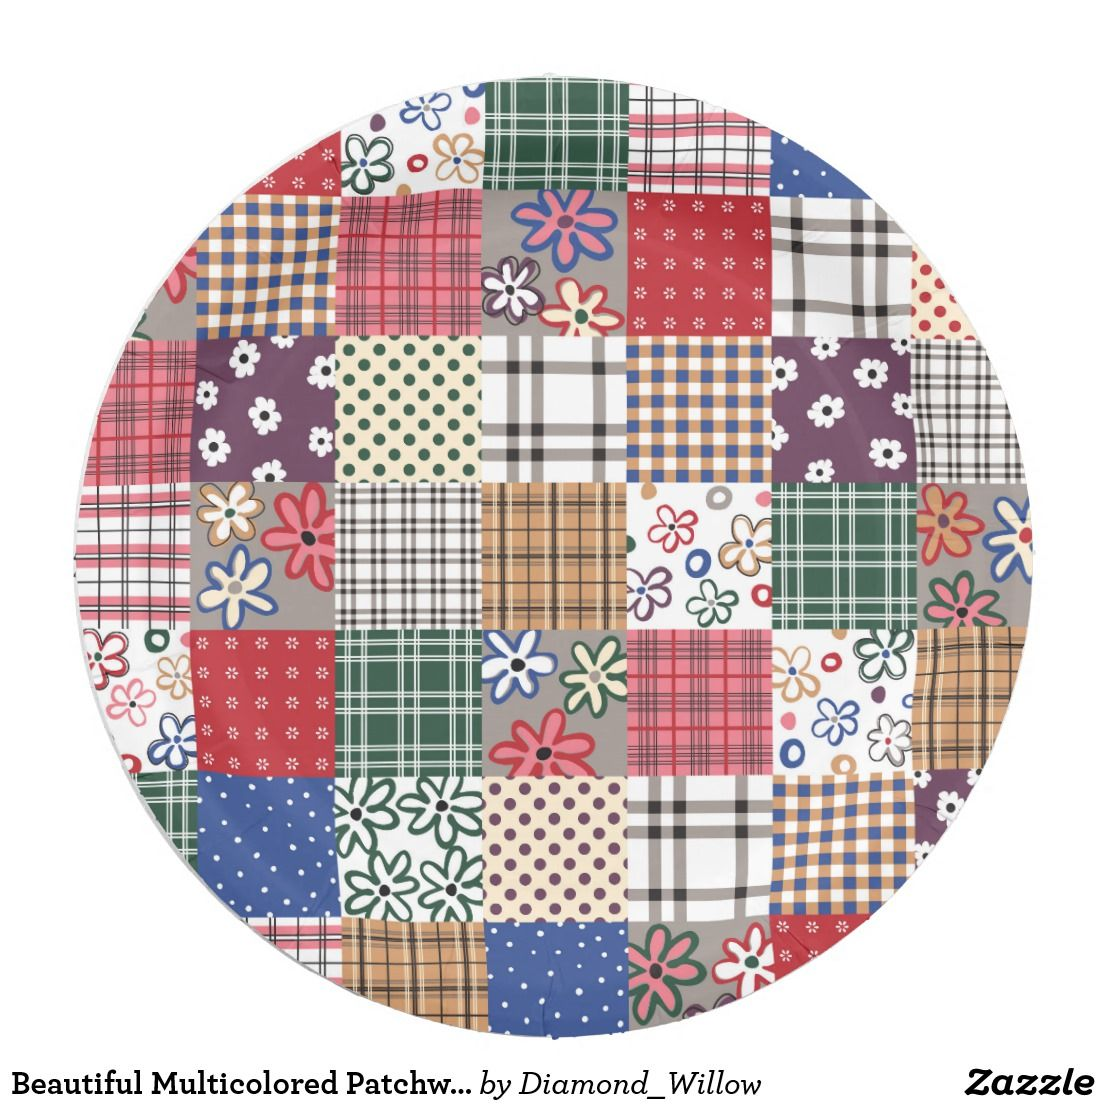 Beautiful Multicolored Patchwork Quilt Pattern Paper Plate  sc 1 st  Pinterest & Beautiful Multicolored Patchwork Quilt Pattern Paper Plate | Cool ...